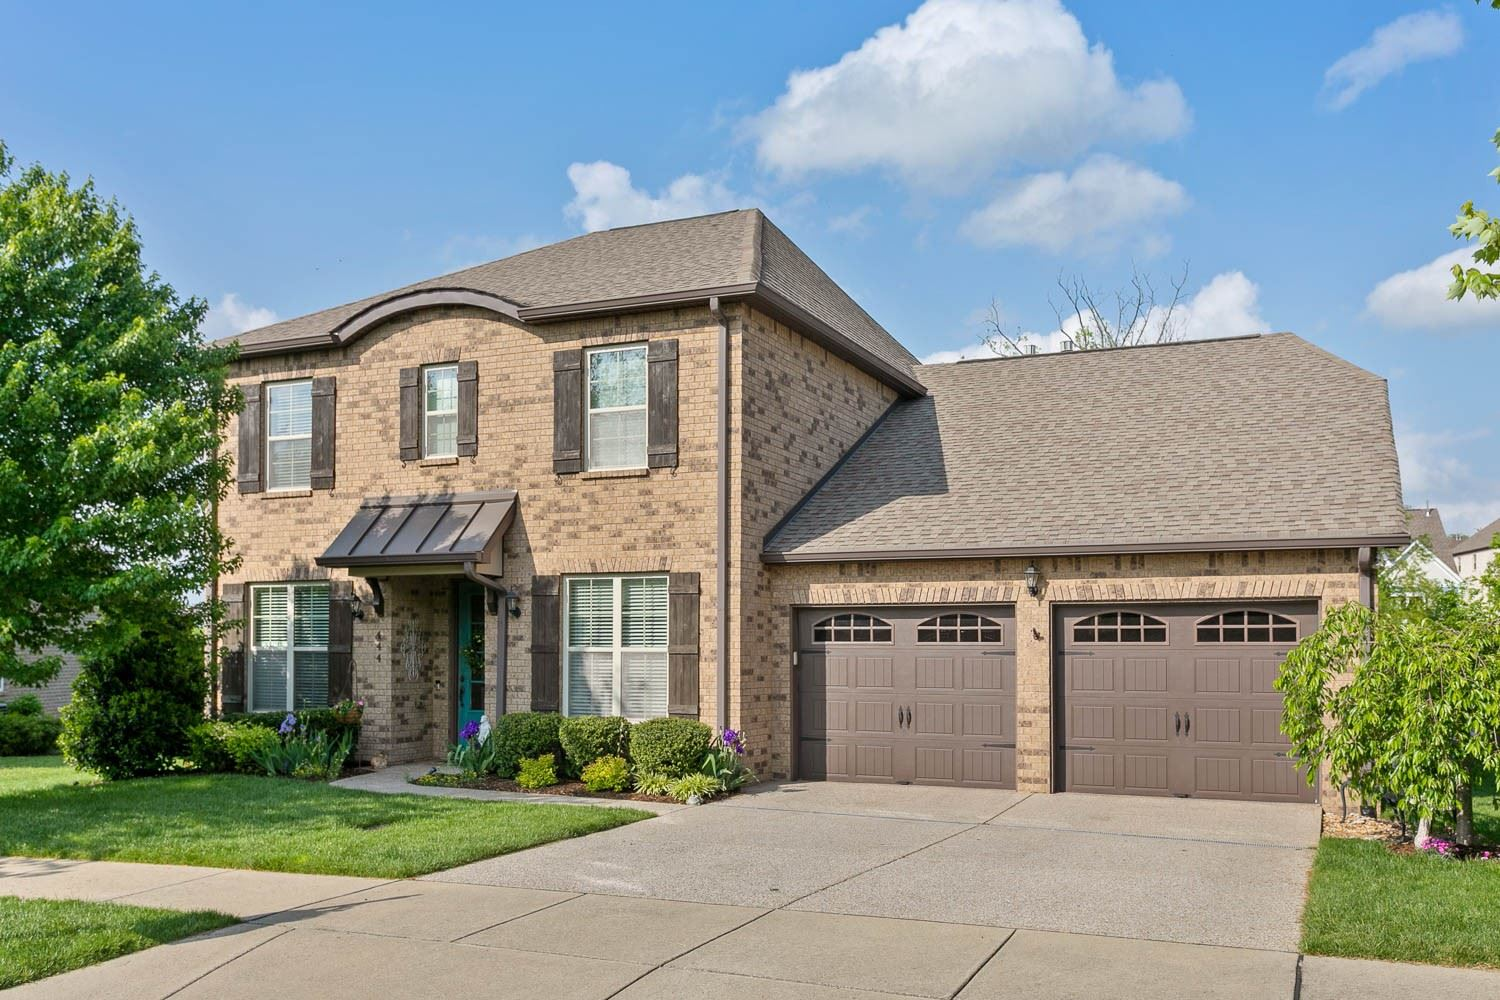 Photo of 444 Irvine Ln, Franklin, TN 37064 (MLS # 2253086)